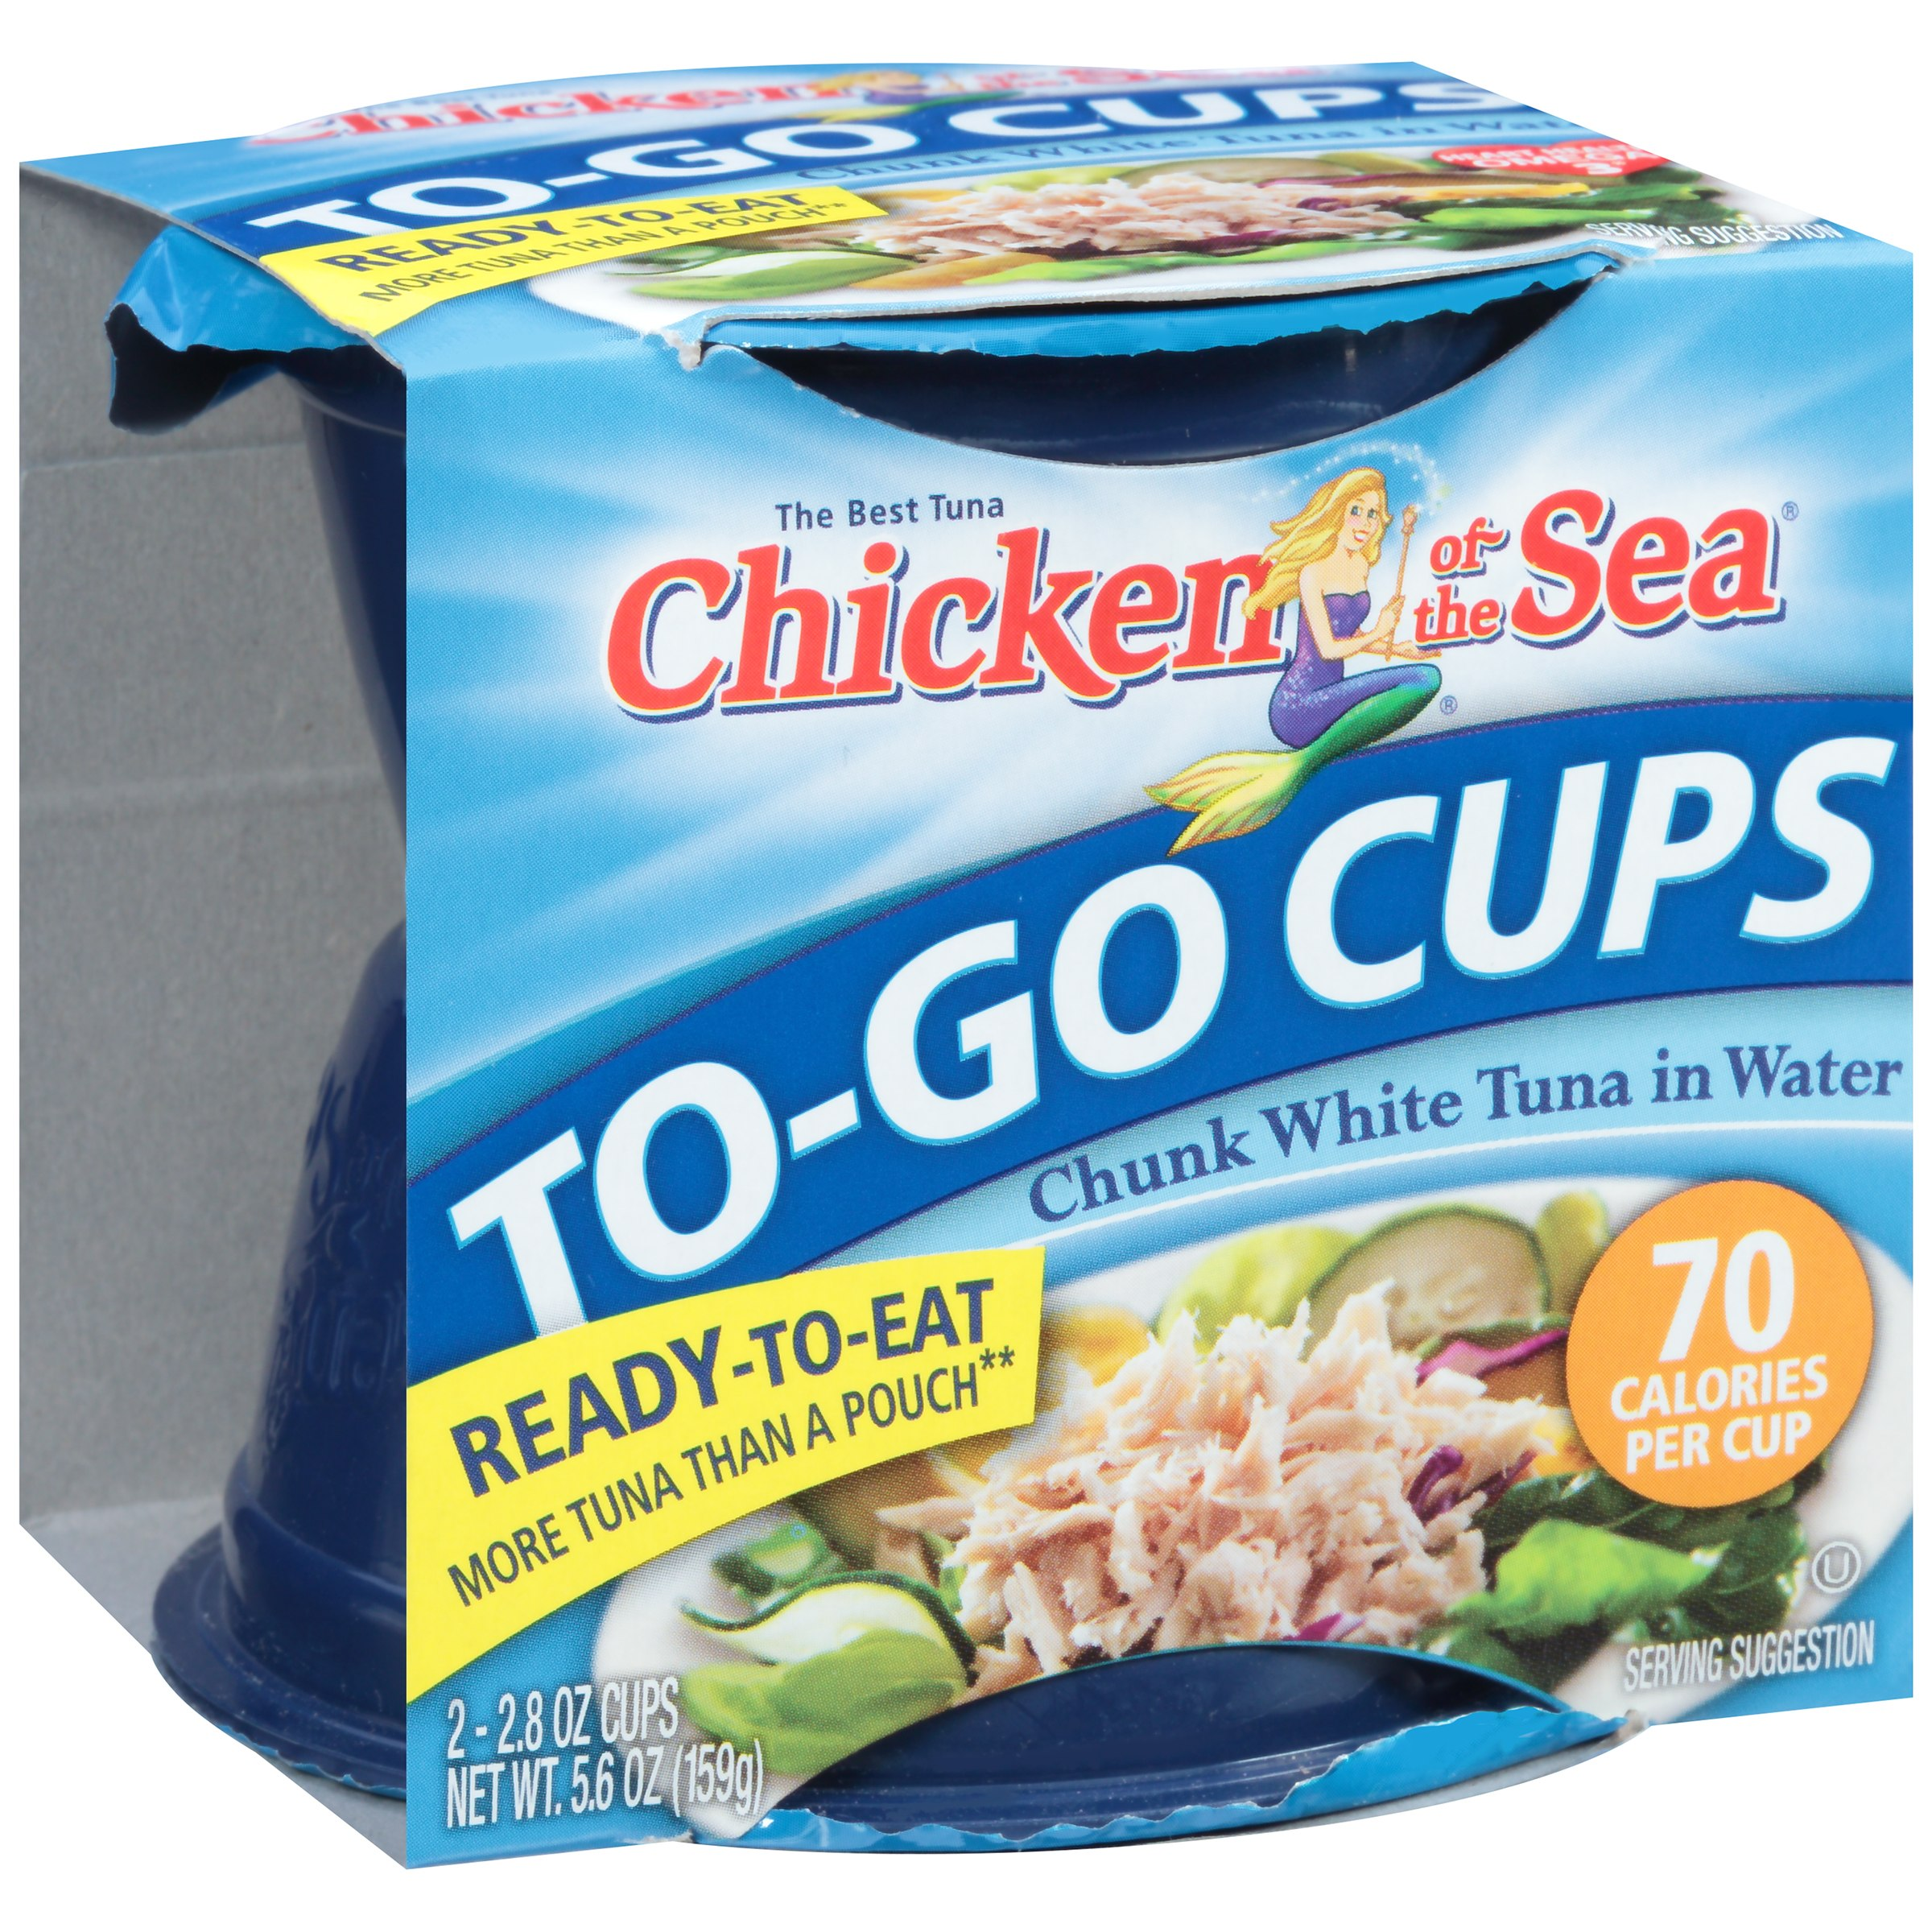 Chicken of the Sea® Chunk White Tuna in Water 2-2.8 oz. To-Go Cups 301